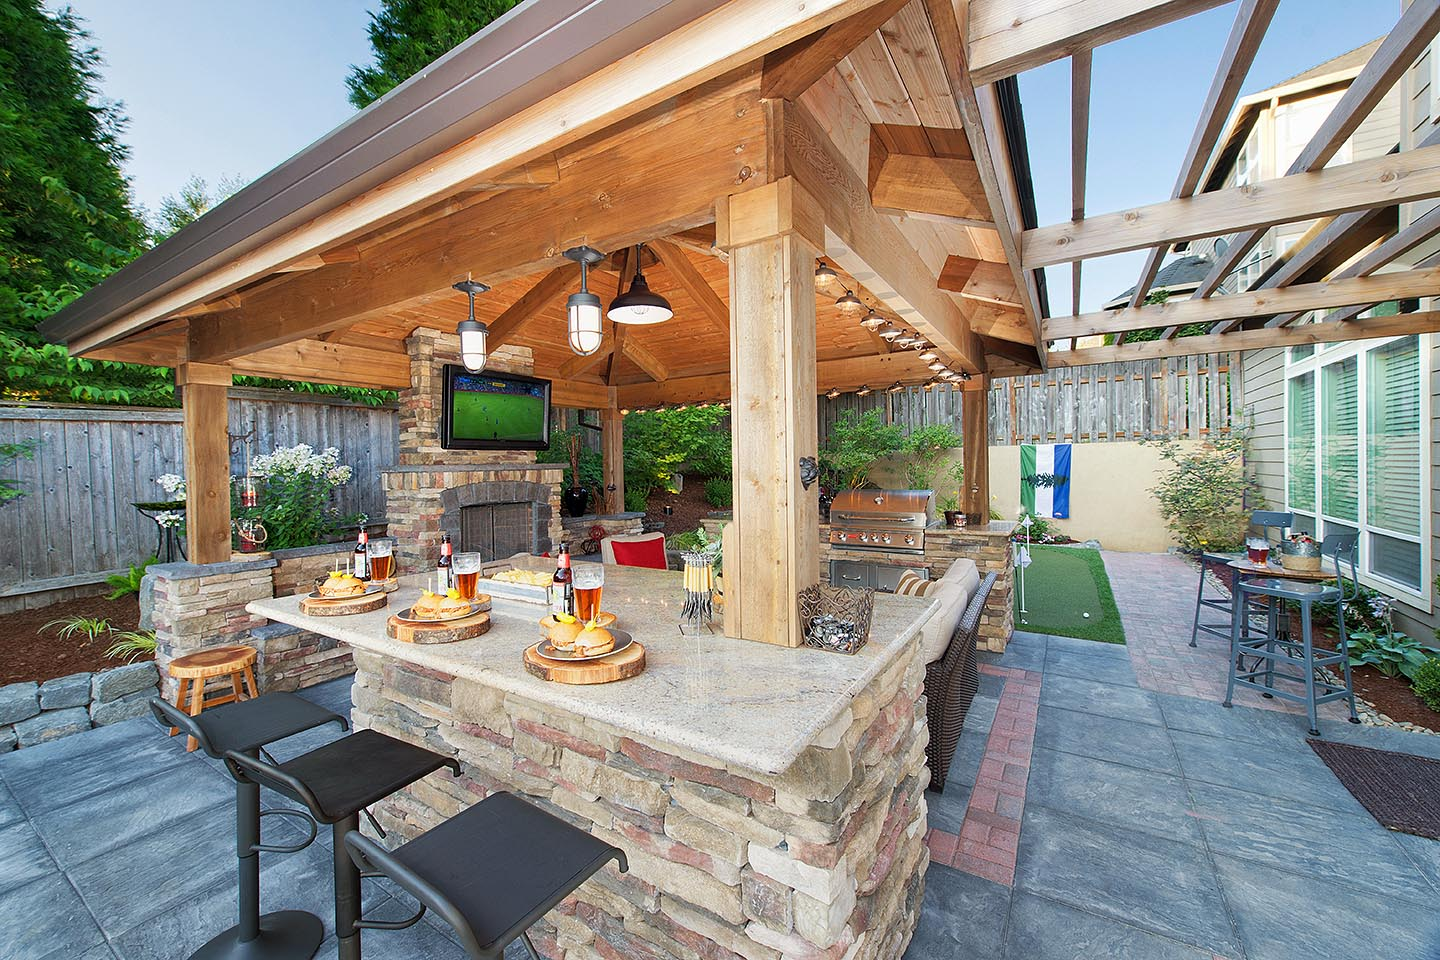 Backyard Gazebo w/Pergola